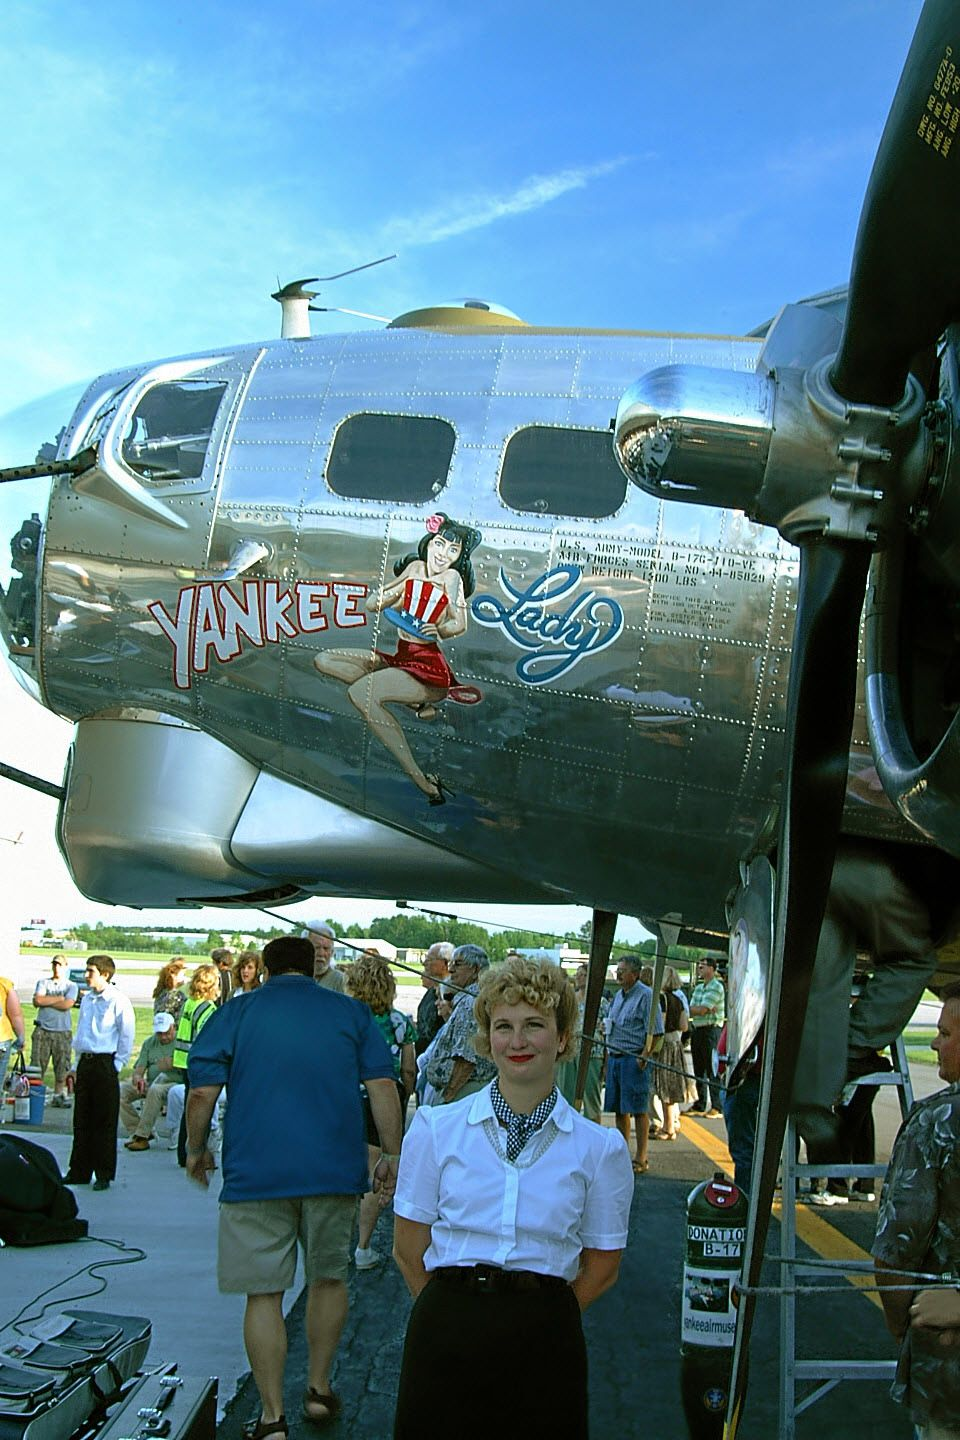 Yankee Lady, from the Yankee Air Museum in Belleville